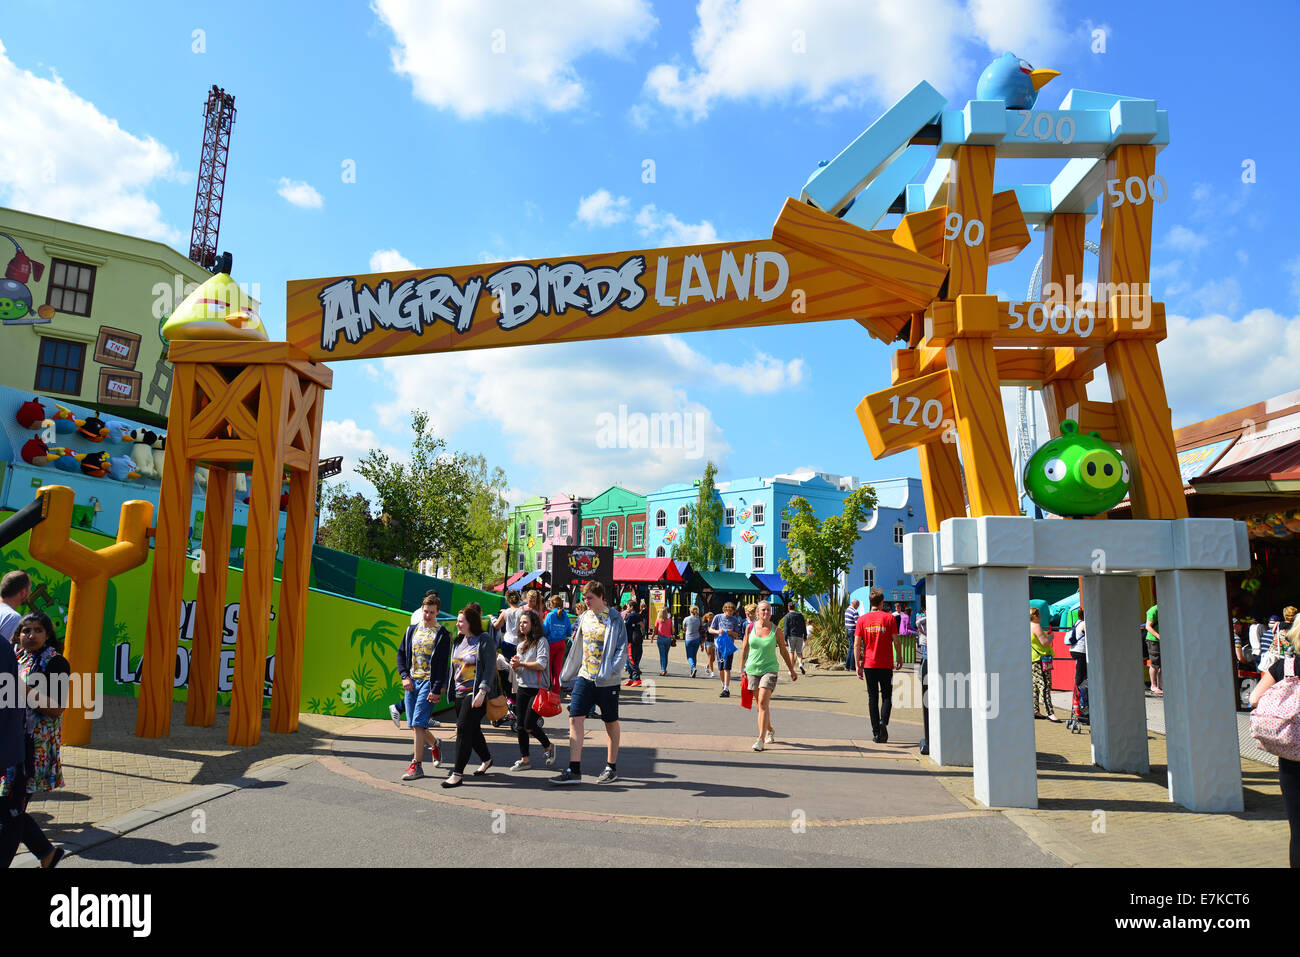 entrance sign to angry birds land thorpe park theme park chertsey stock photo 73571238 alamy. Black Bedroom Furniture Sets. Home Design Ideas